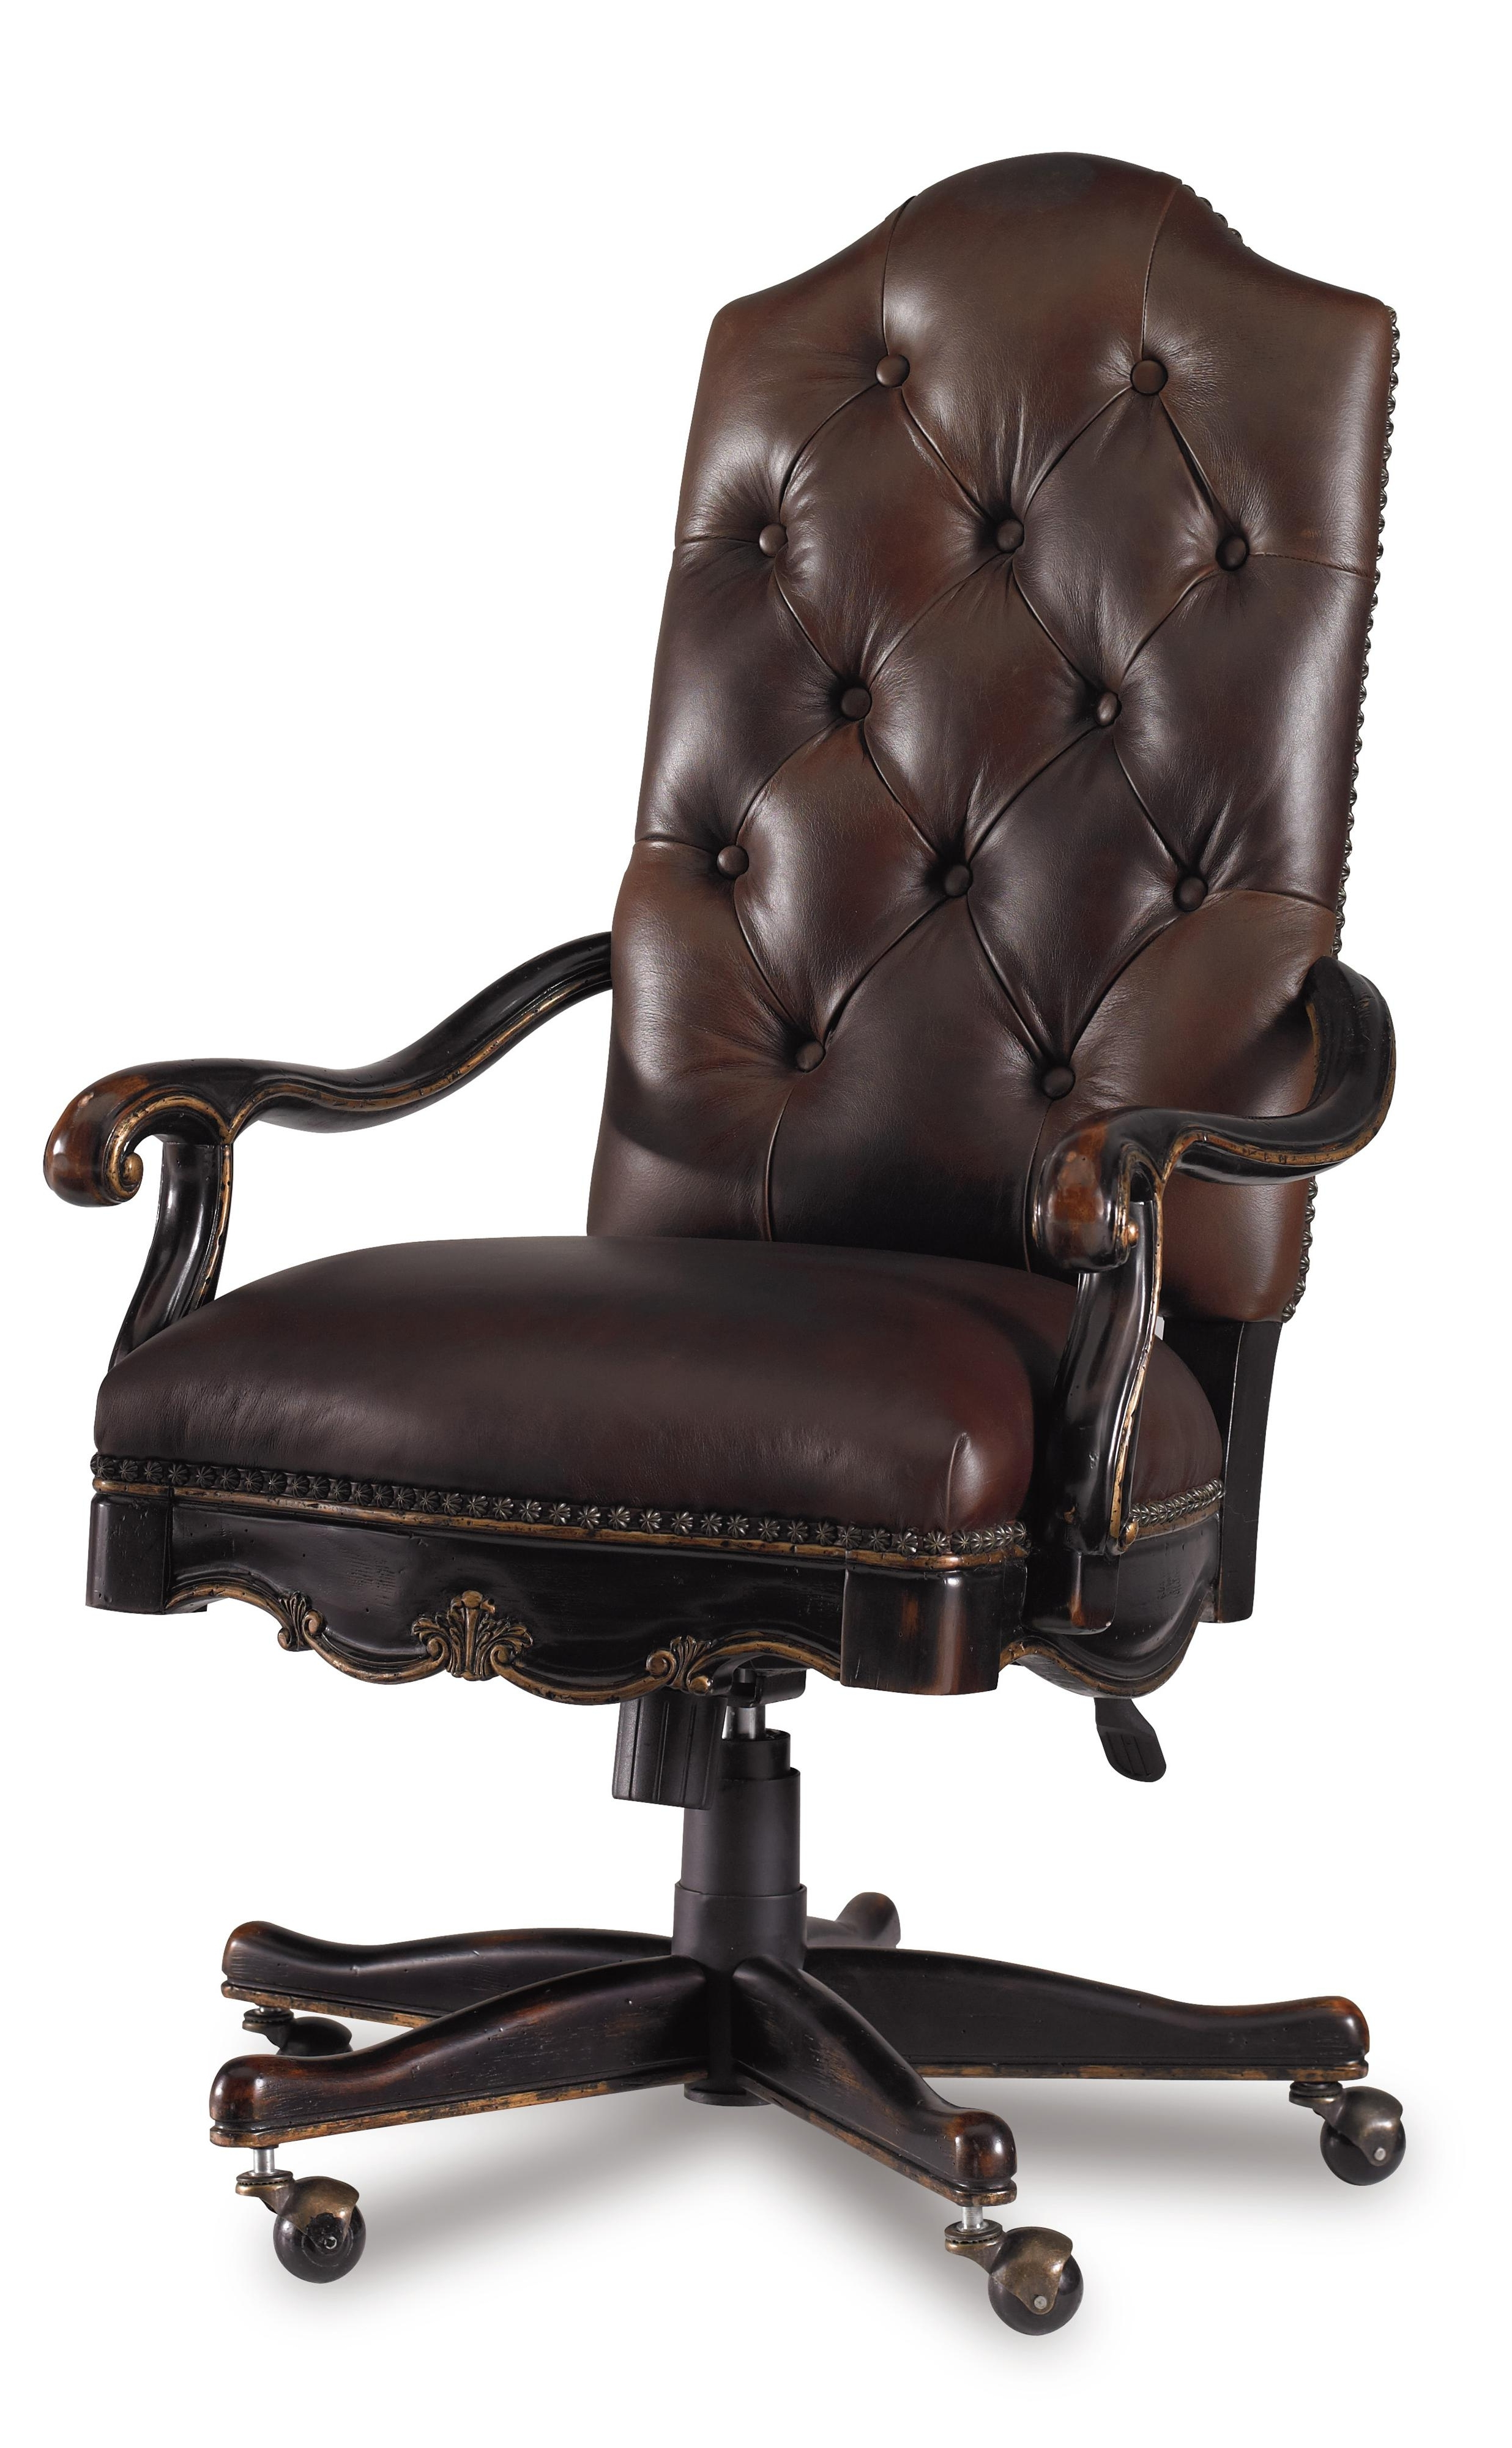 2019 Executive Office Chairs Without Arms Regarding Furniture : Leather Office Chairs Without Arms Office Chair Store (View 2 of 20)